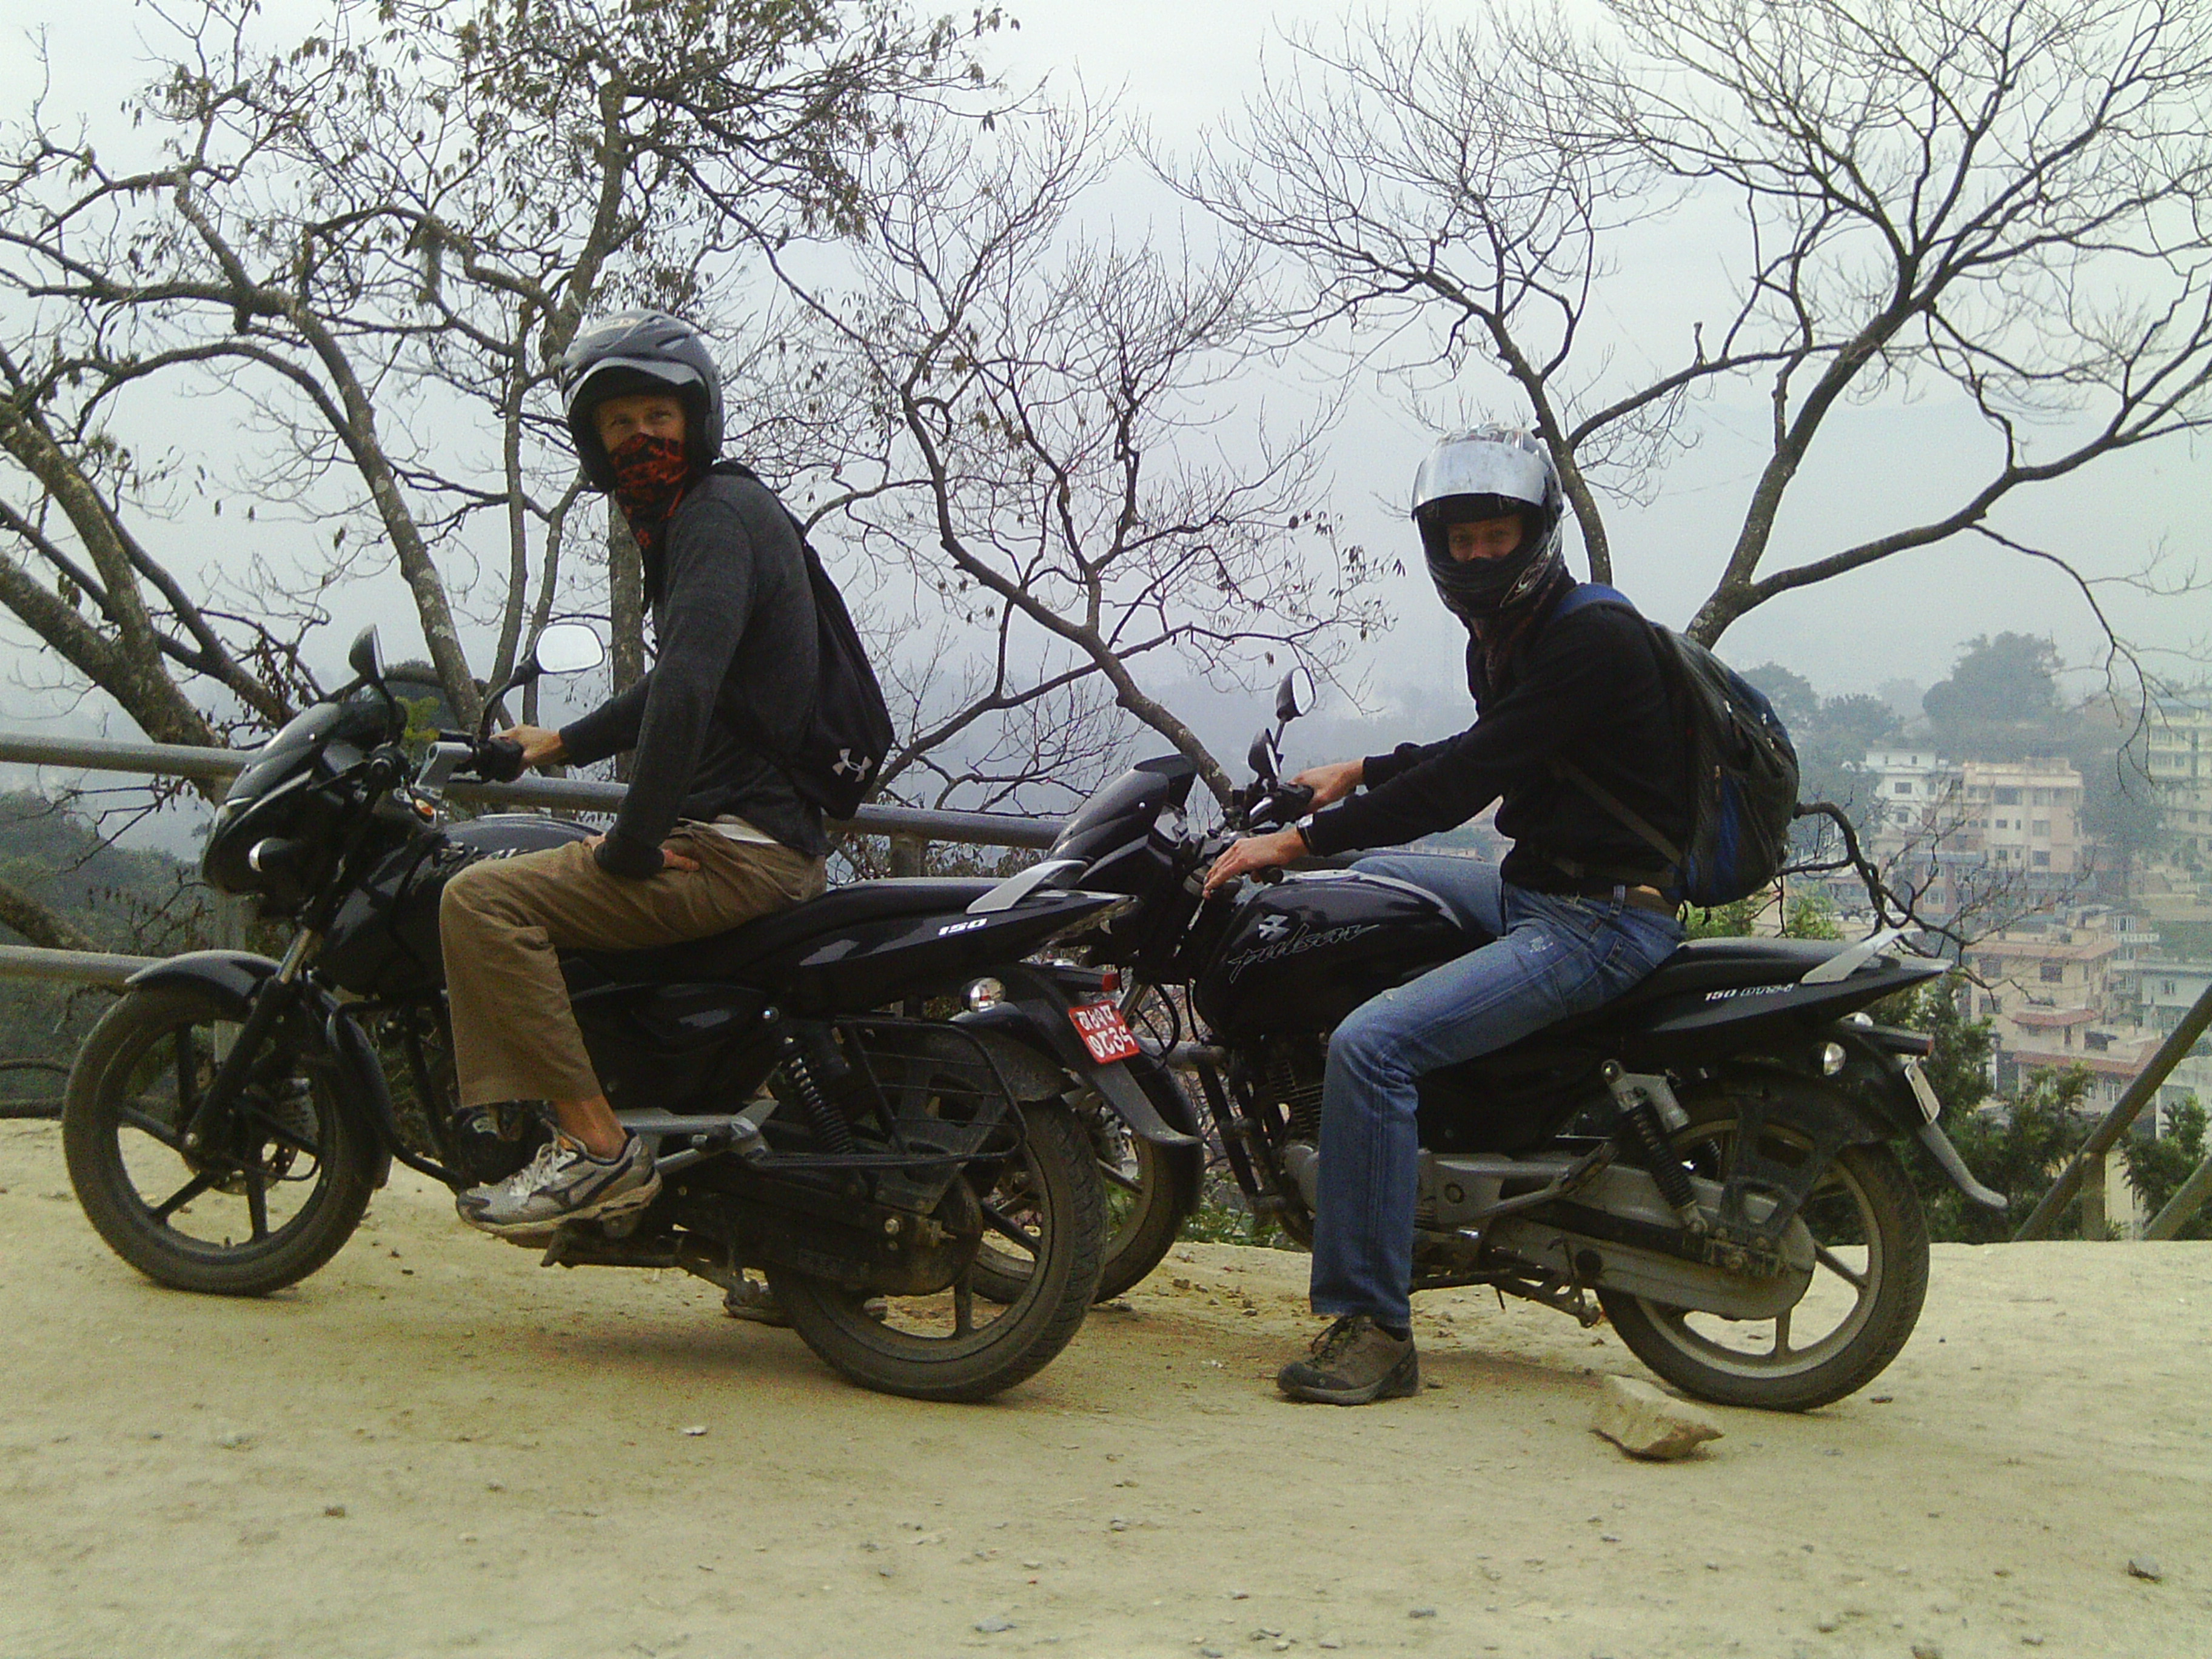 Friends on motorcycles.JPG